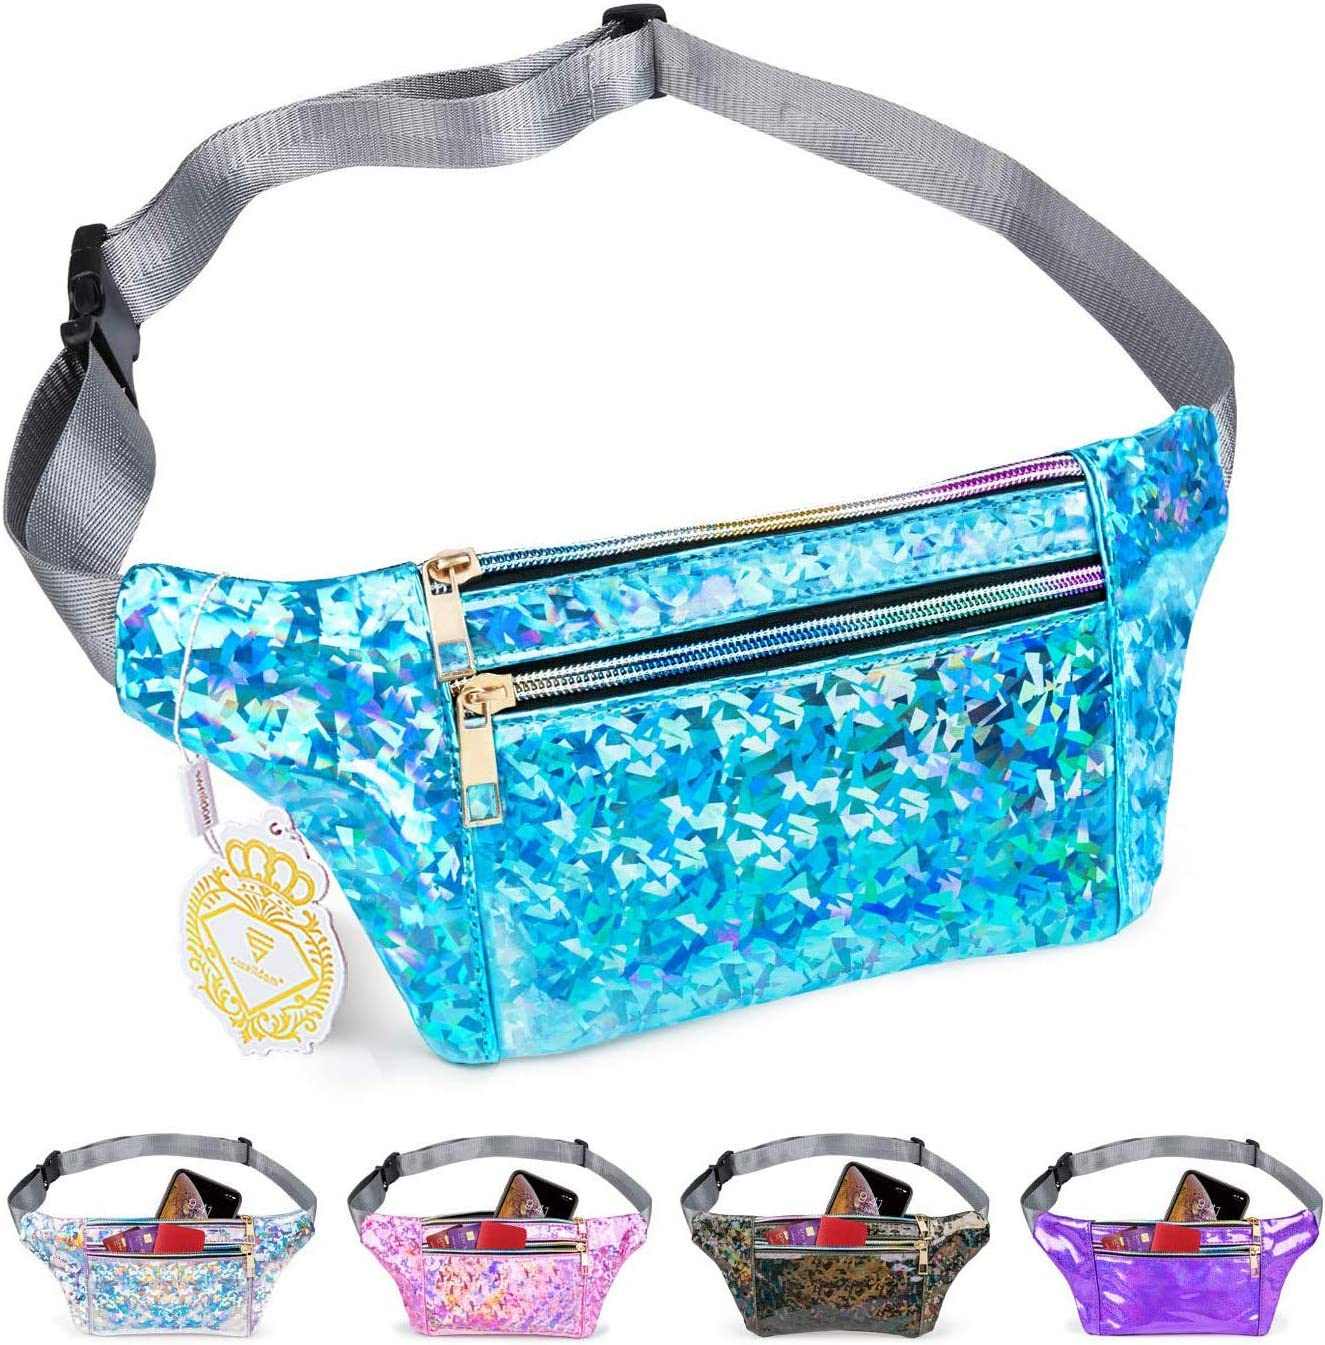 Happy Birthday 3 Sport Waist Bag Fanny Pack Adjustable For Hike